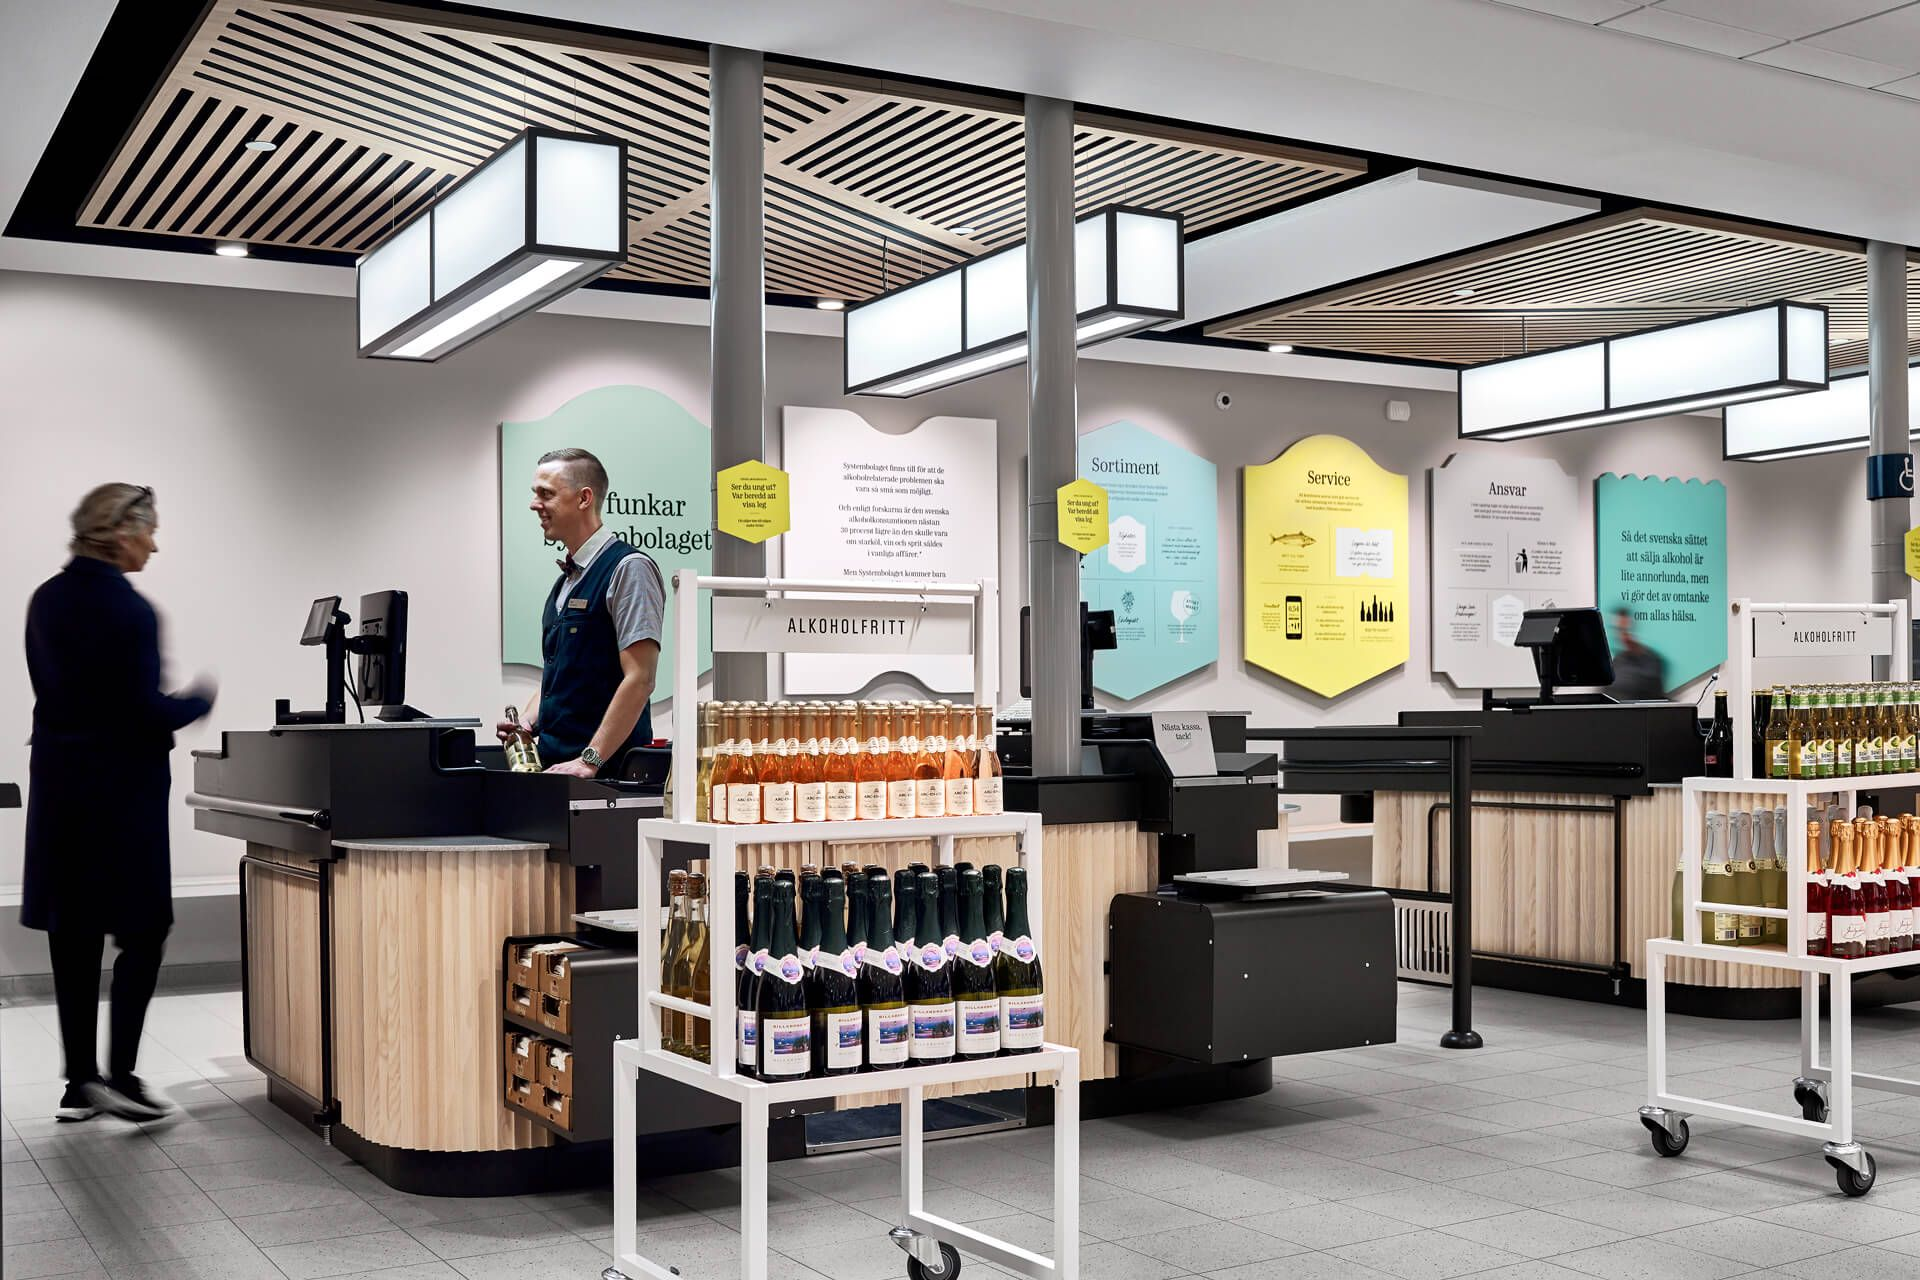 Design Interieur Granby Systembolaget Caseimage Kassa1 Granby Vm And Display